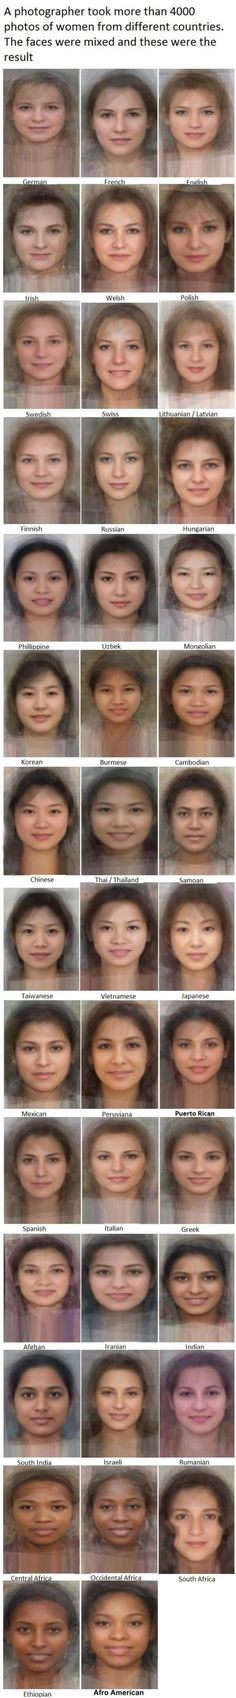 average faces of women from different countries ... this is really neat. It's interesting how you can see the faces are are similarly shaped and such.